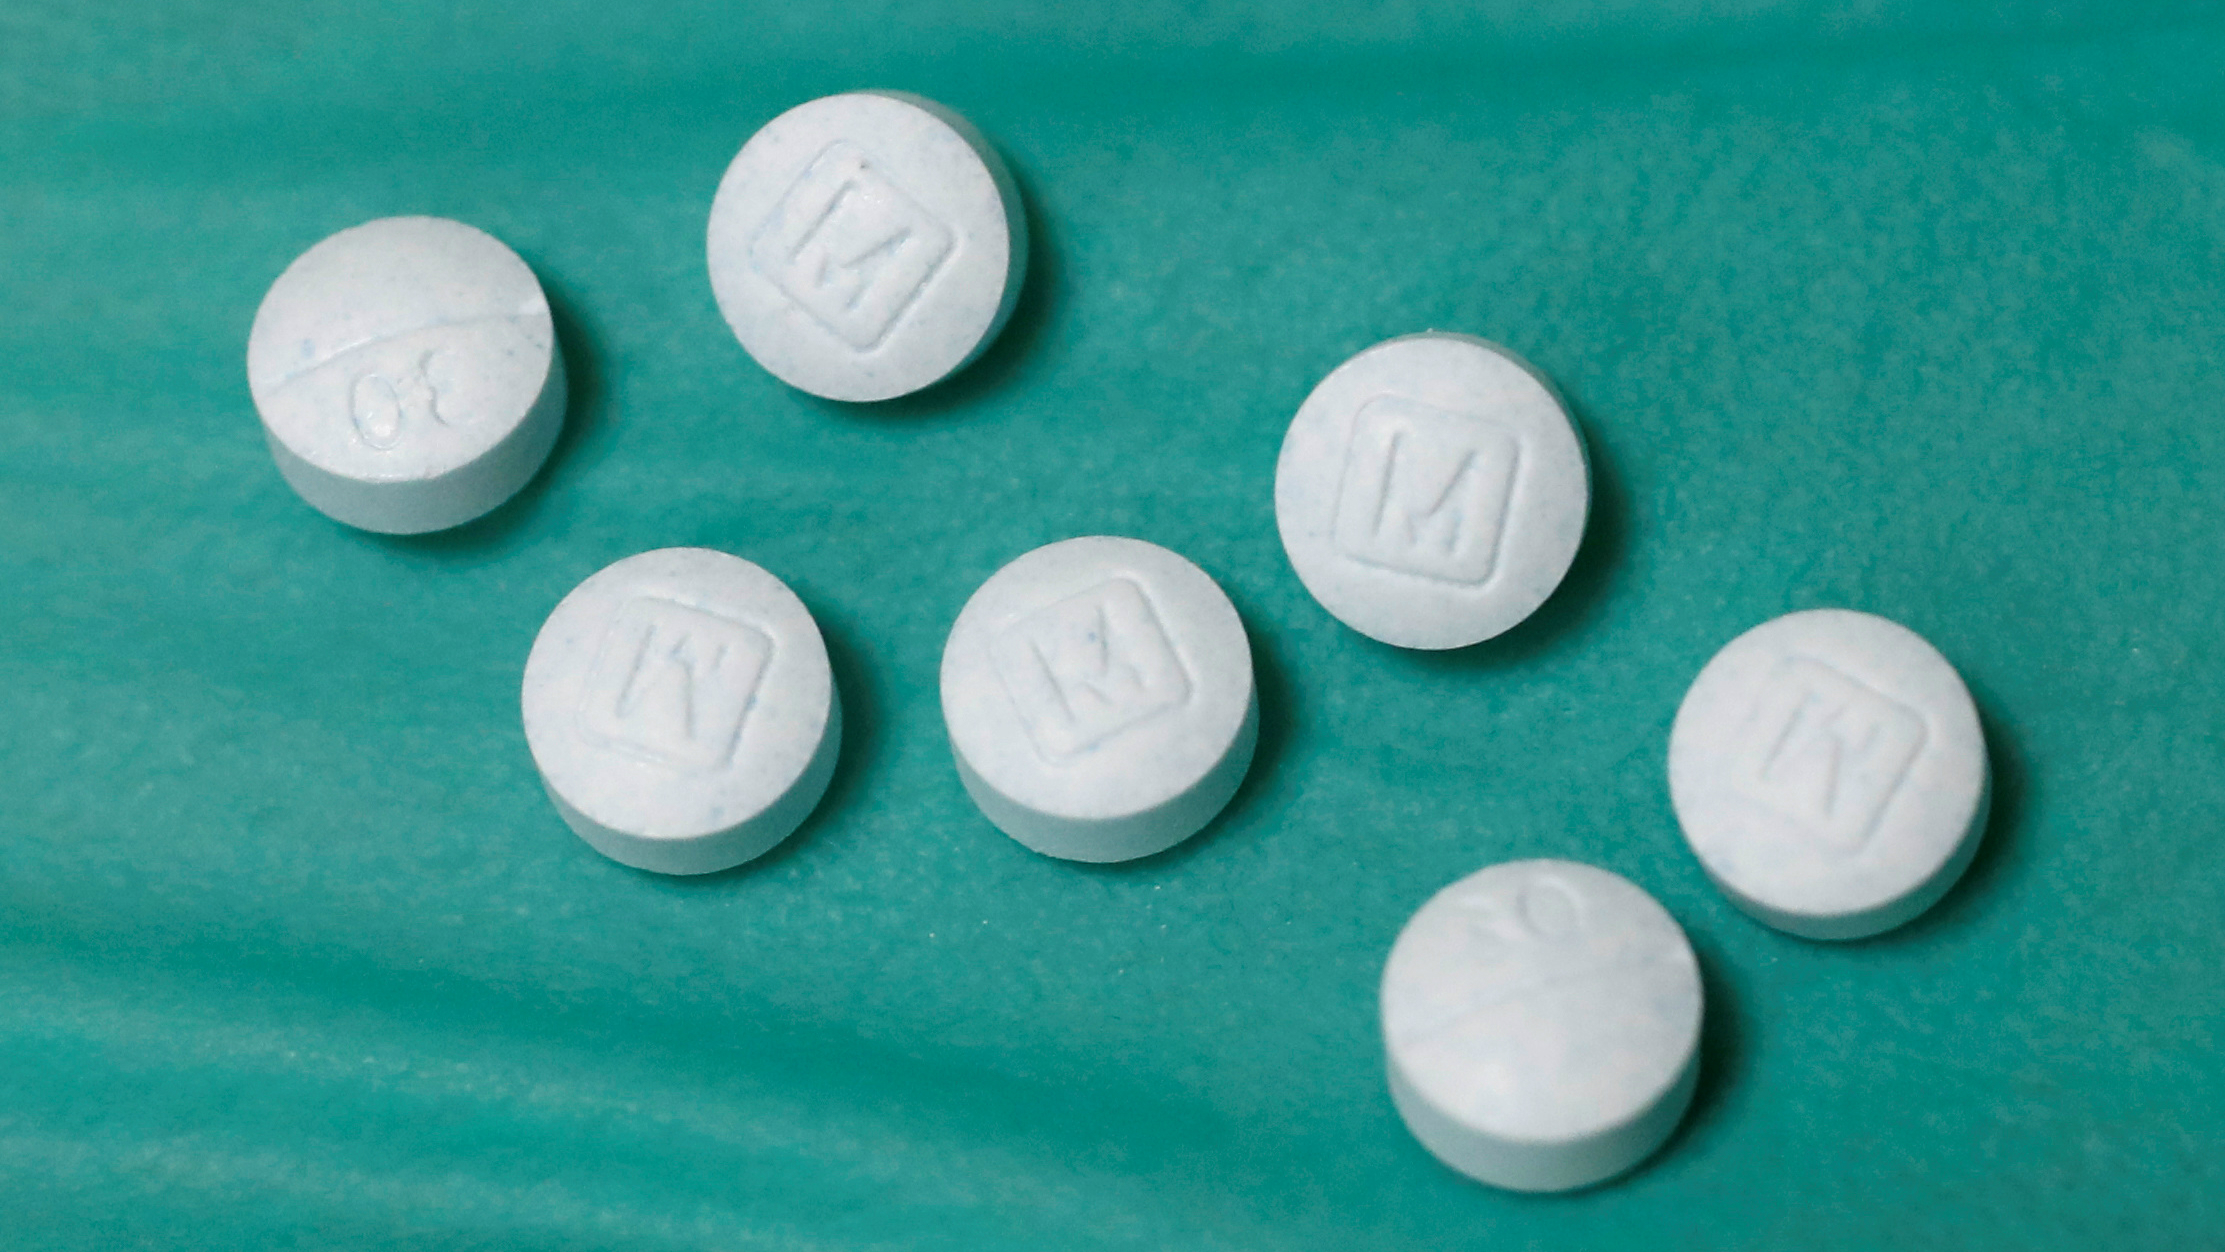 A picture of some Oxycodone pills